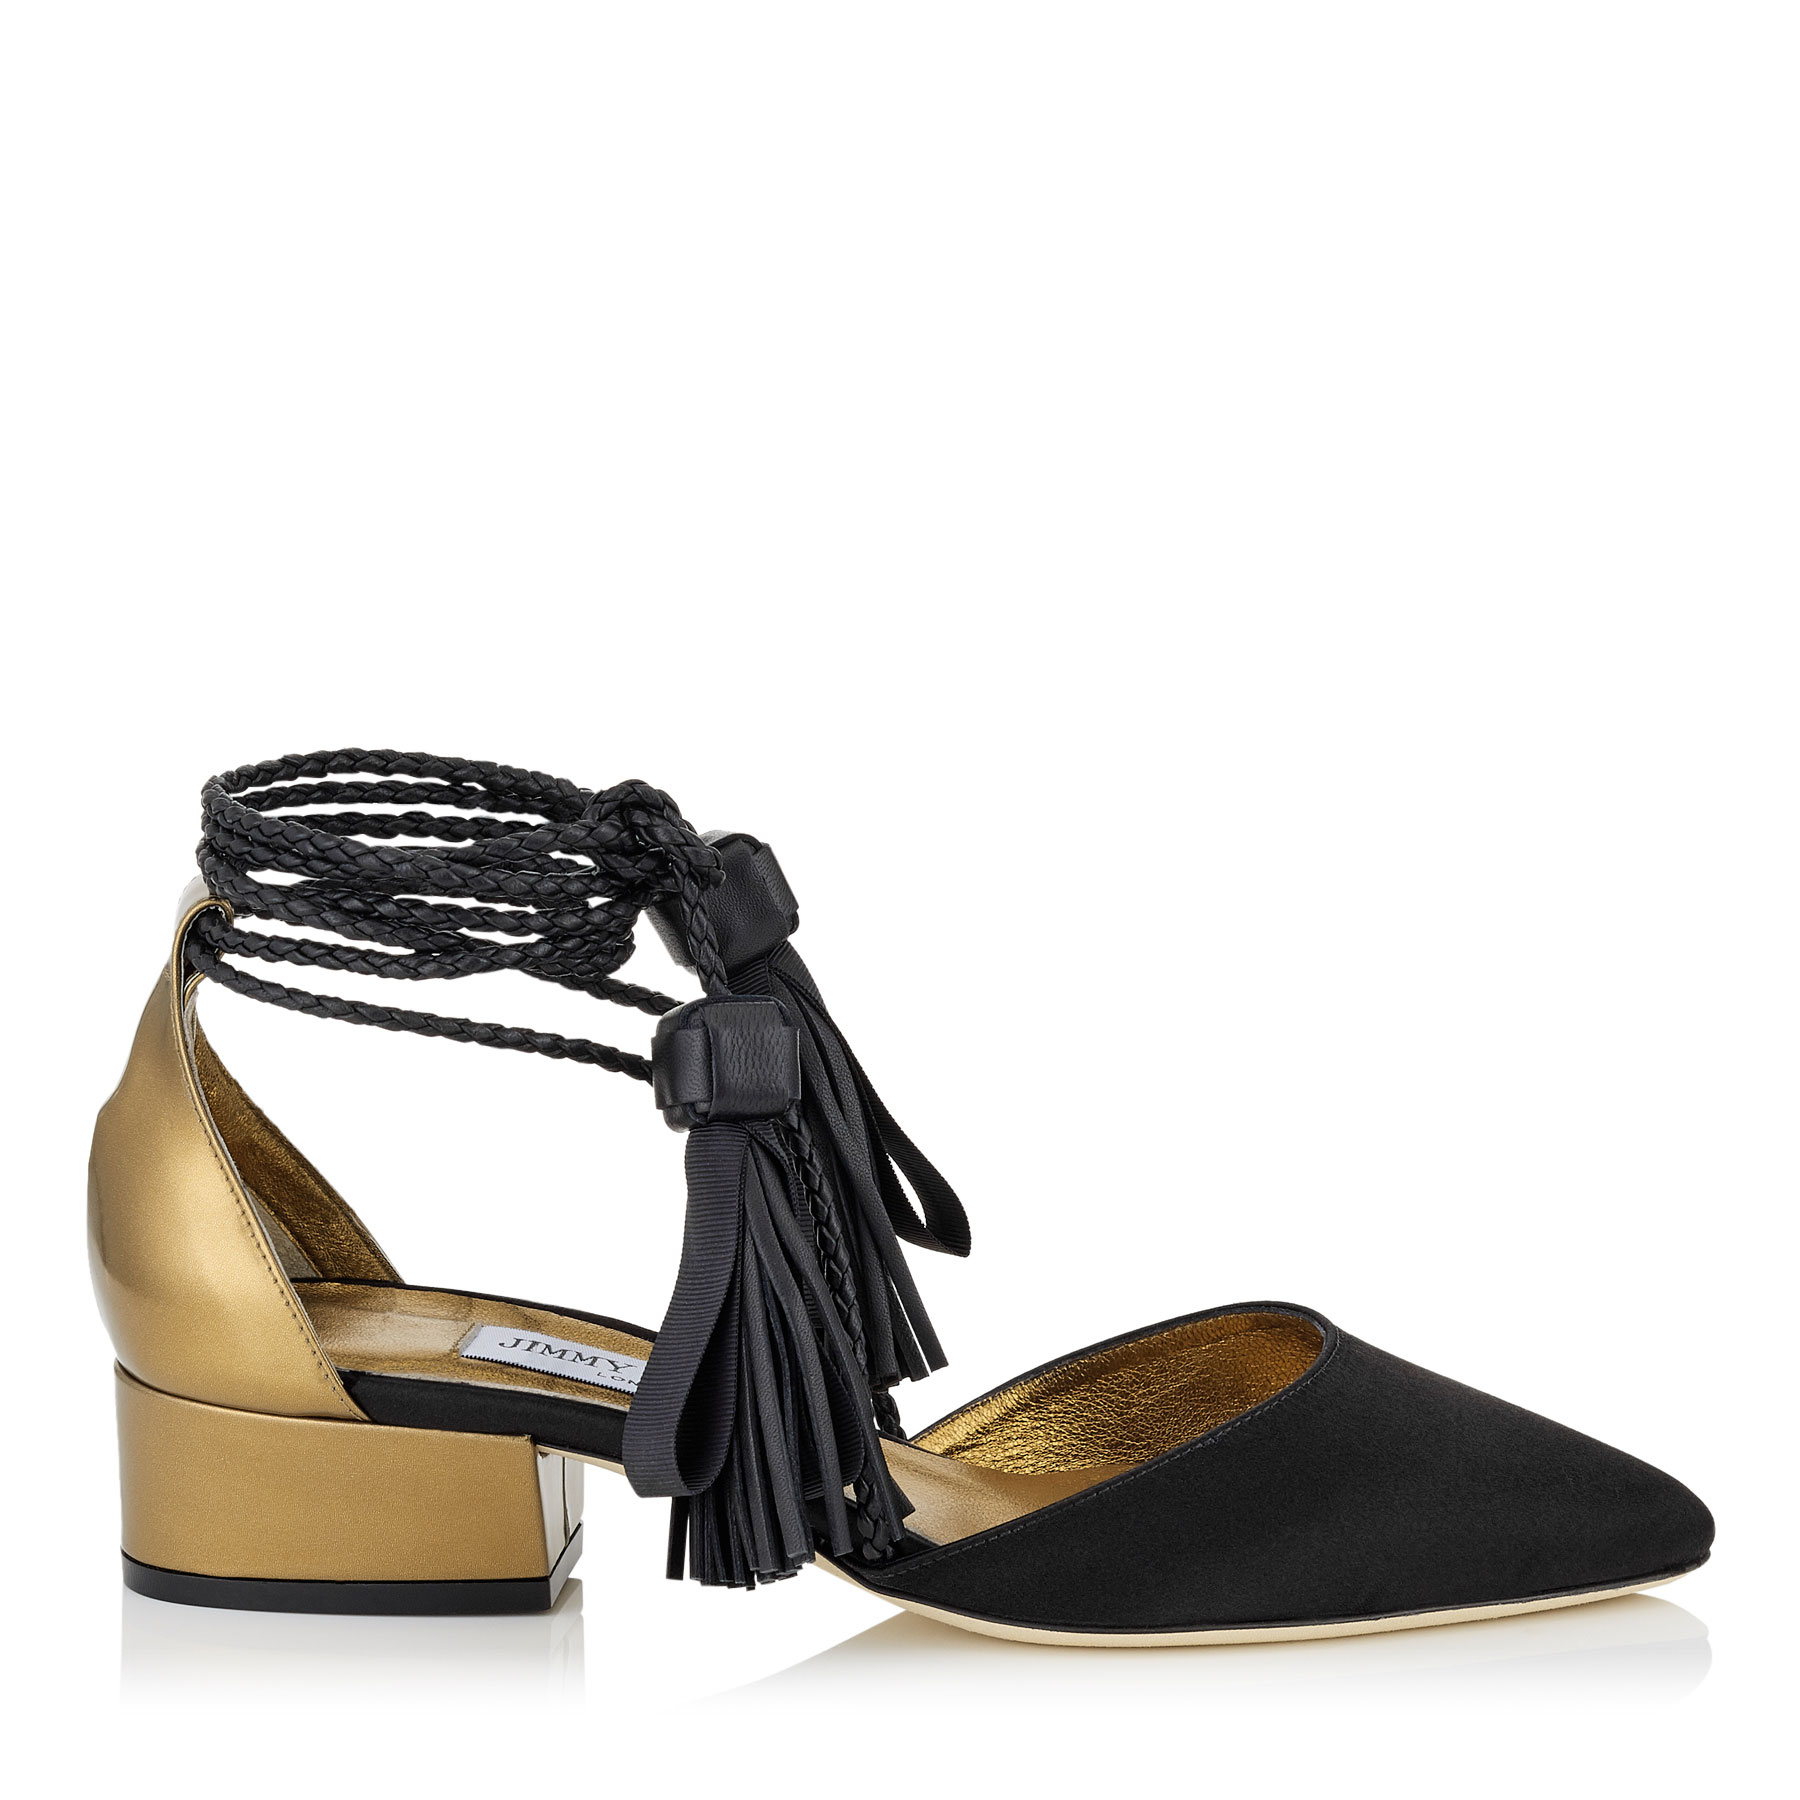 DUCHESS 30 Black Satin and Honey Gold Mirror Leather Pumps